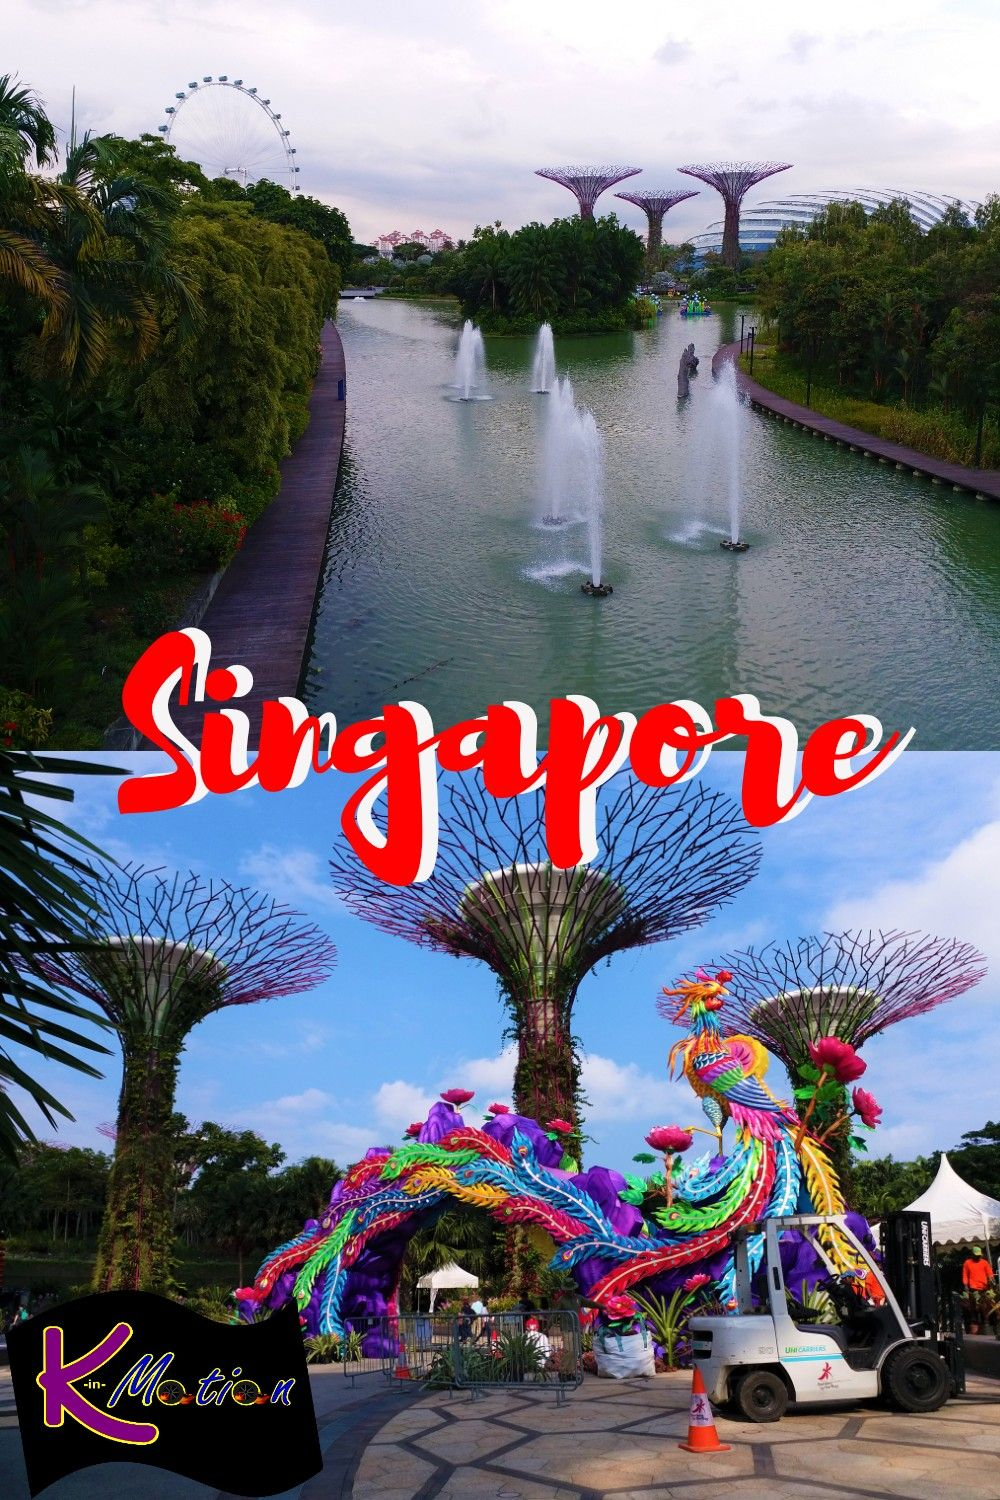 f19d47e49974f5a1042f478358698e4e - Gardens By The Bay Singapore On Budget